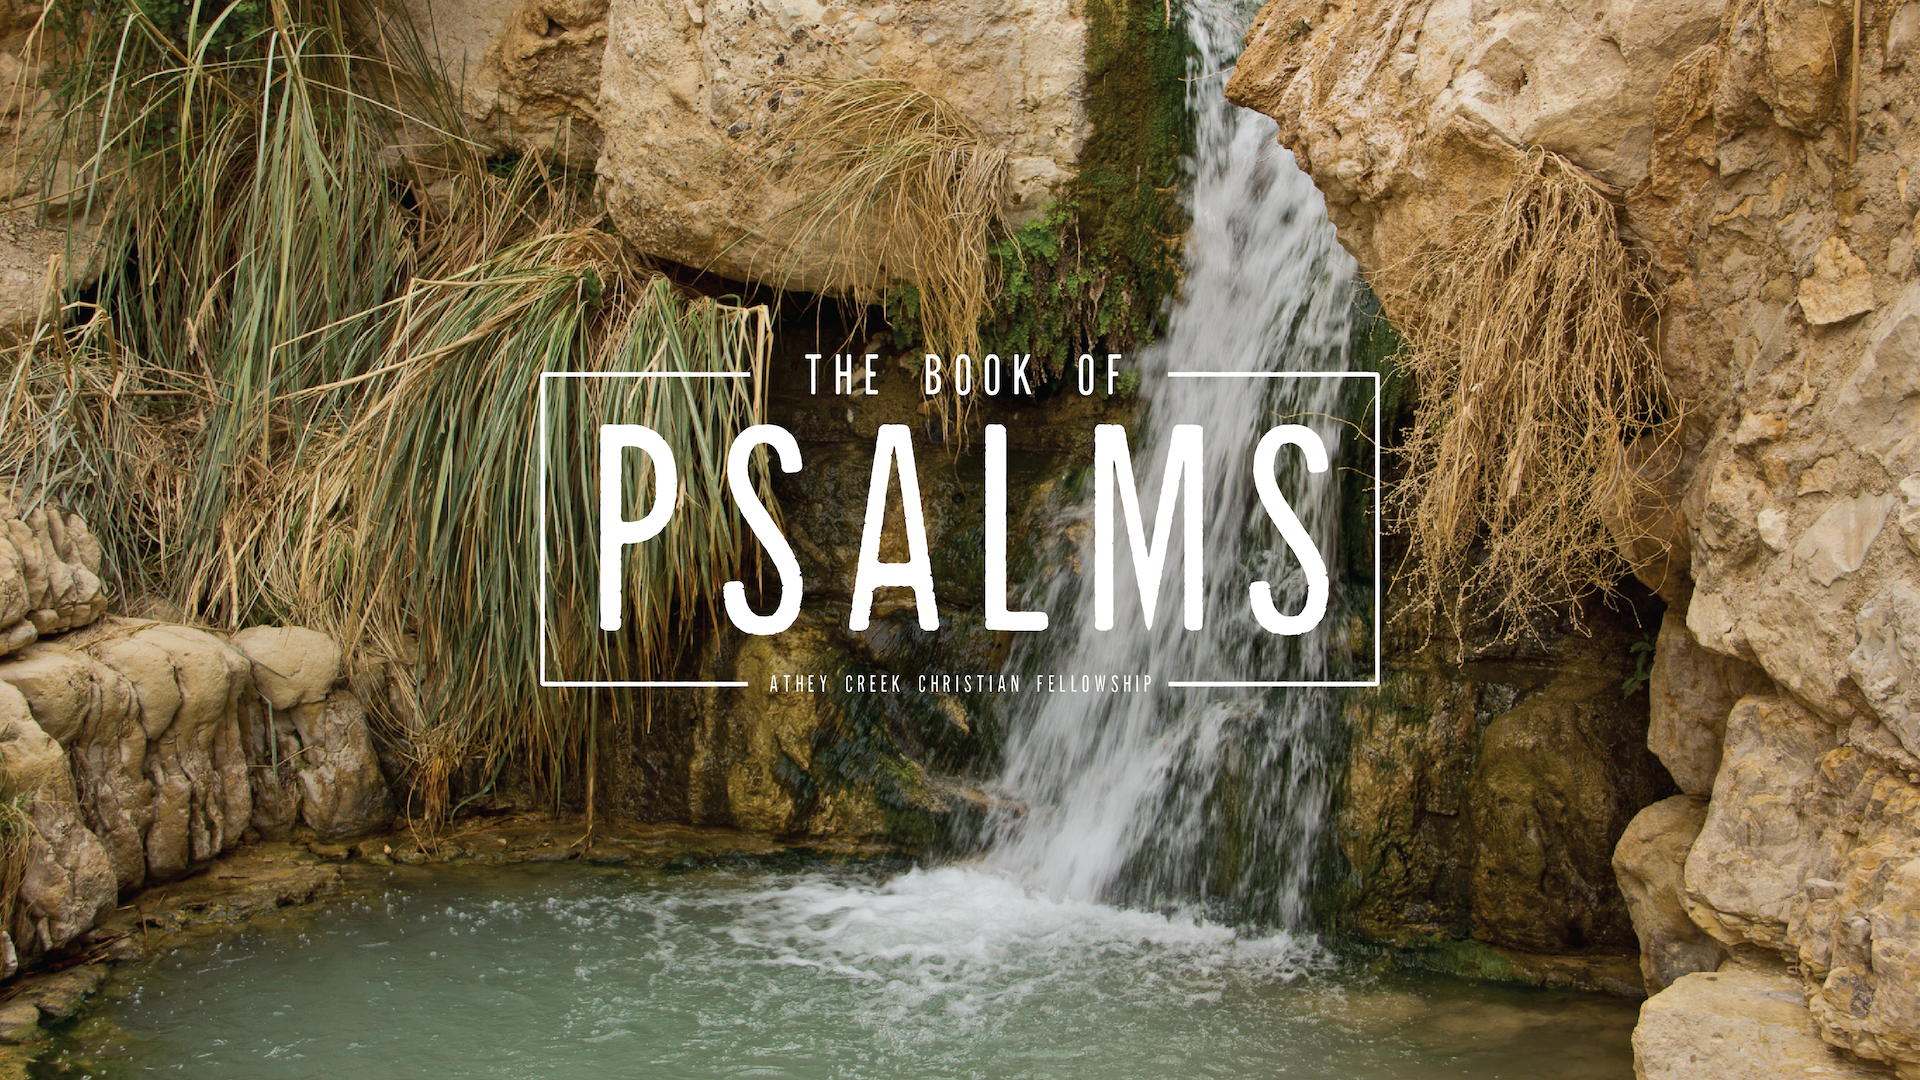 Poster forThrough the Bible (Psalms 80-82)